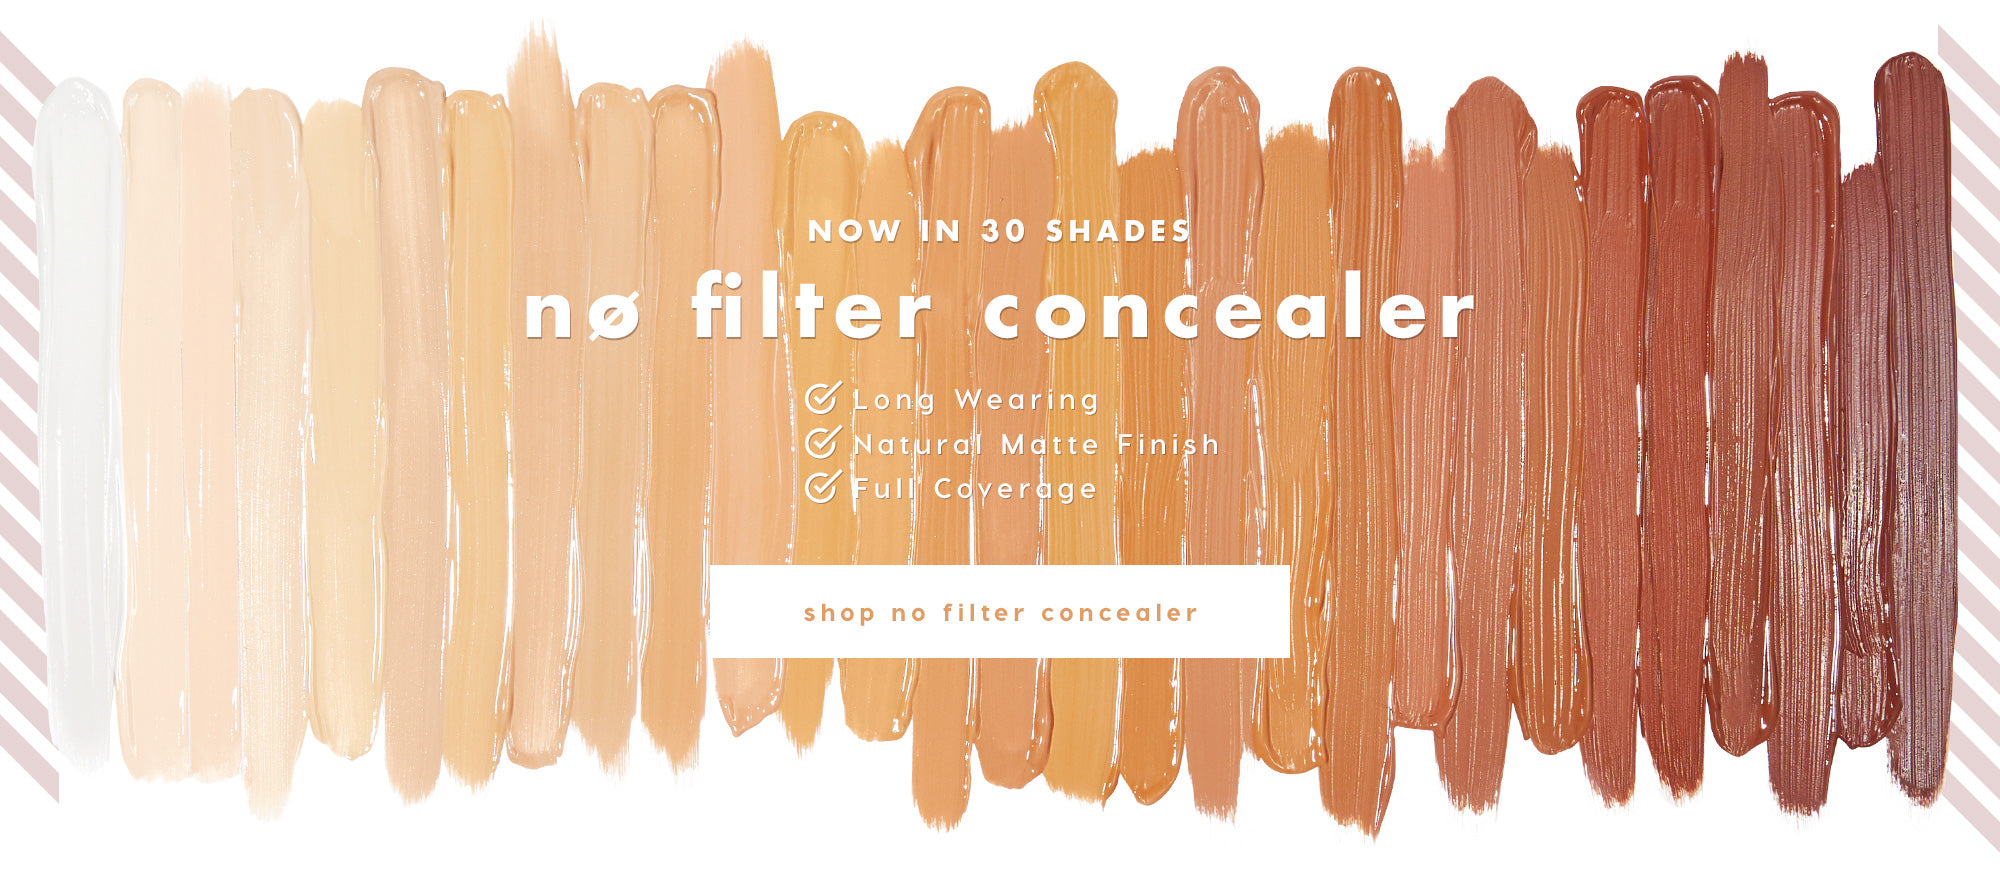 No Filter Concealer Now in 30 Shades